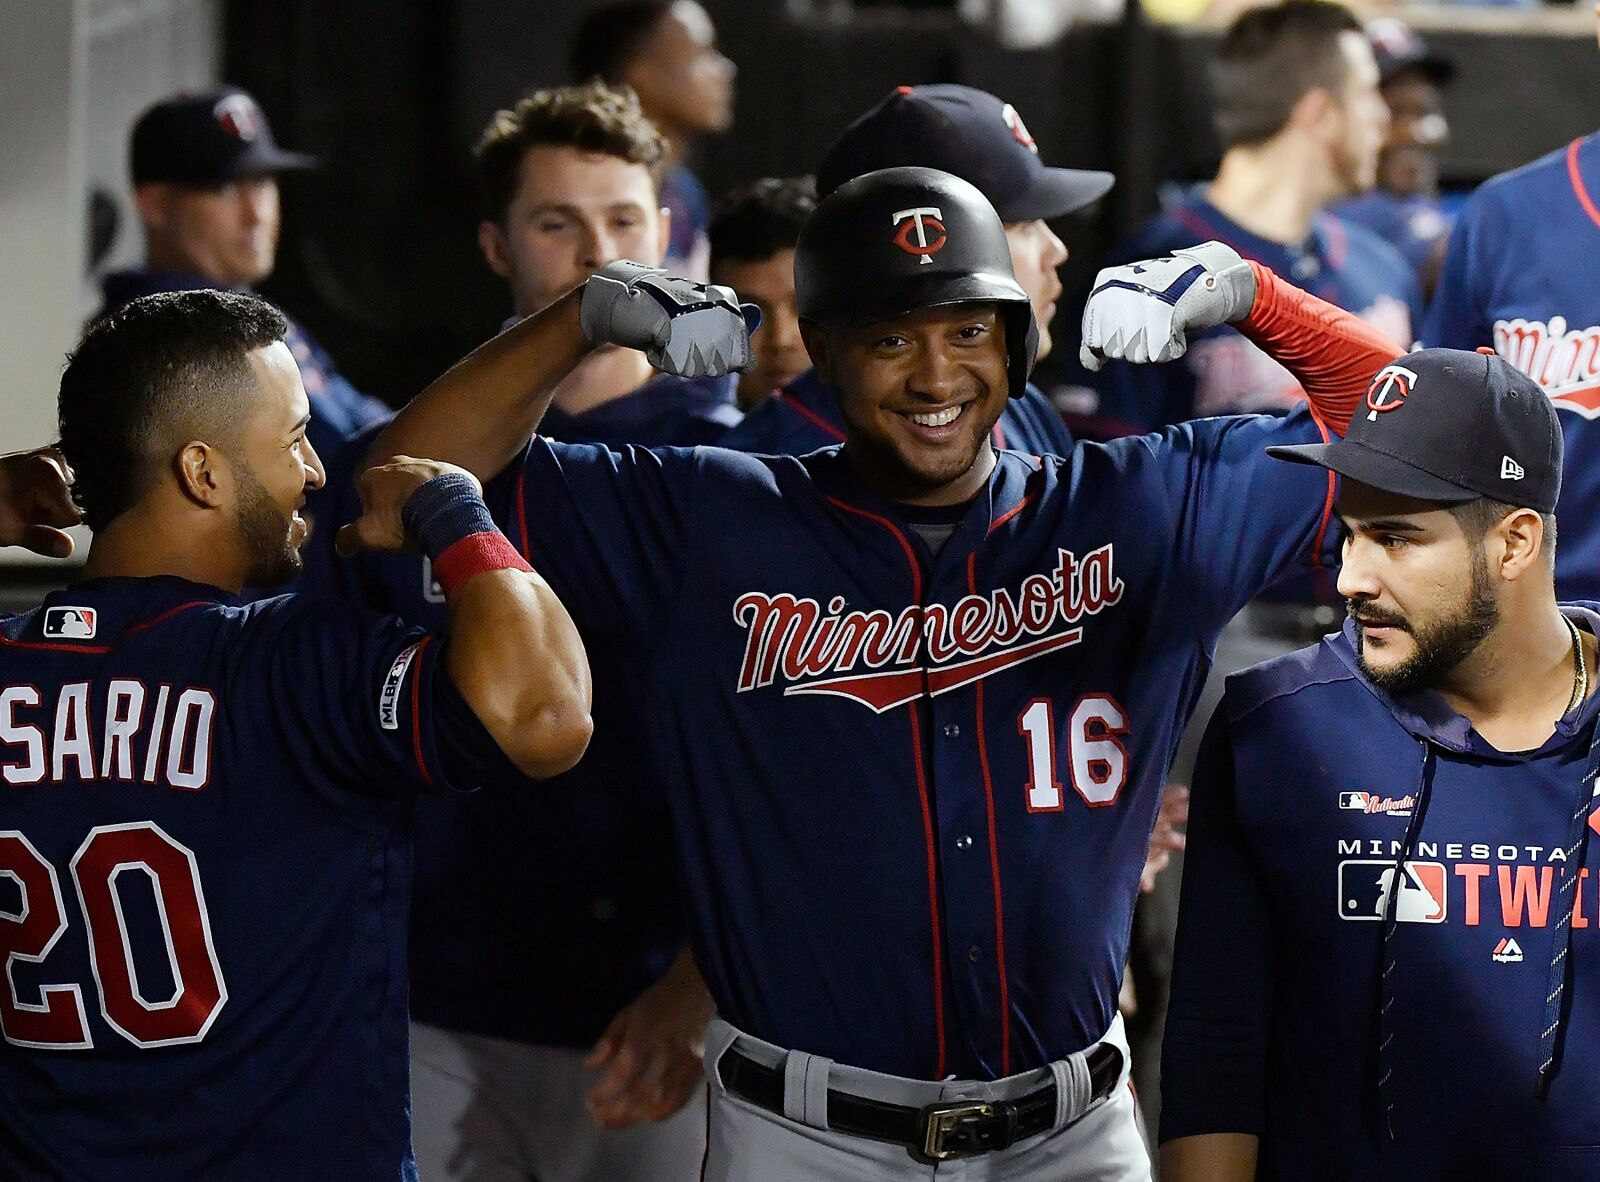 Baltimore Orioles: Jonathan Schoop Attempts To Re-Establish Himself With Minnesota Twins